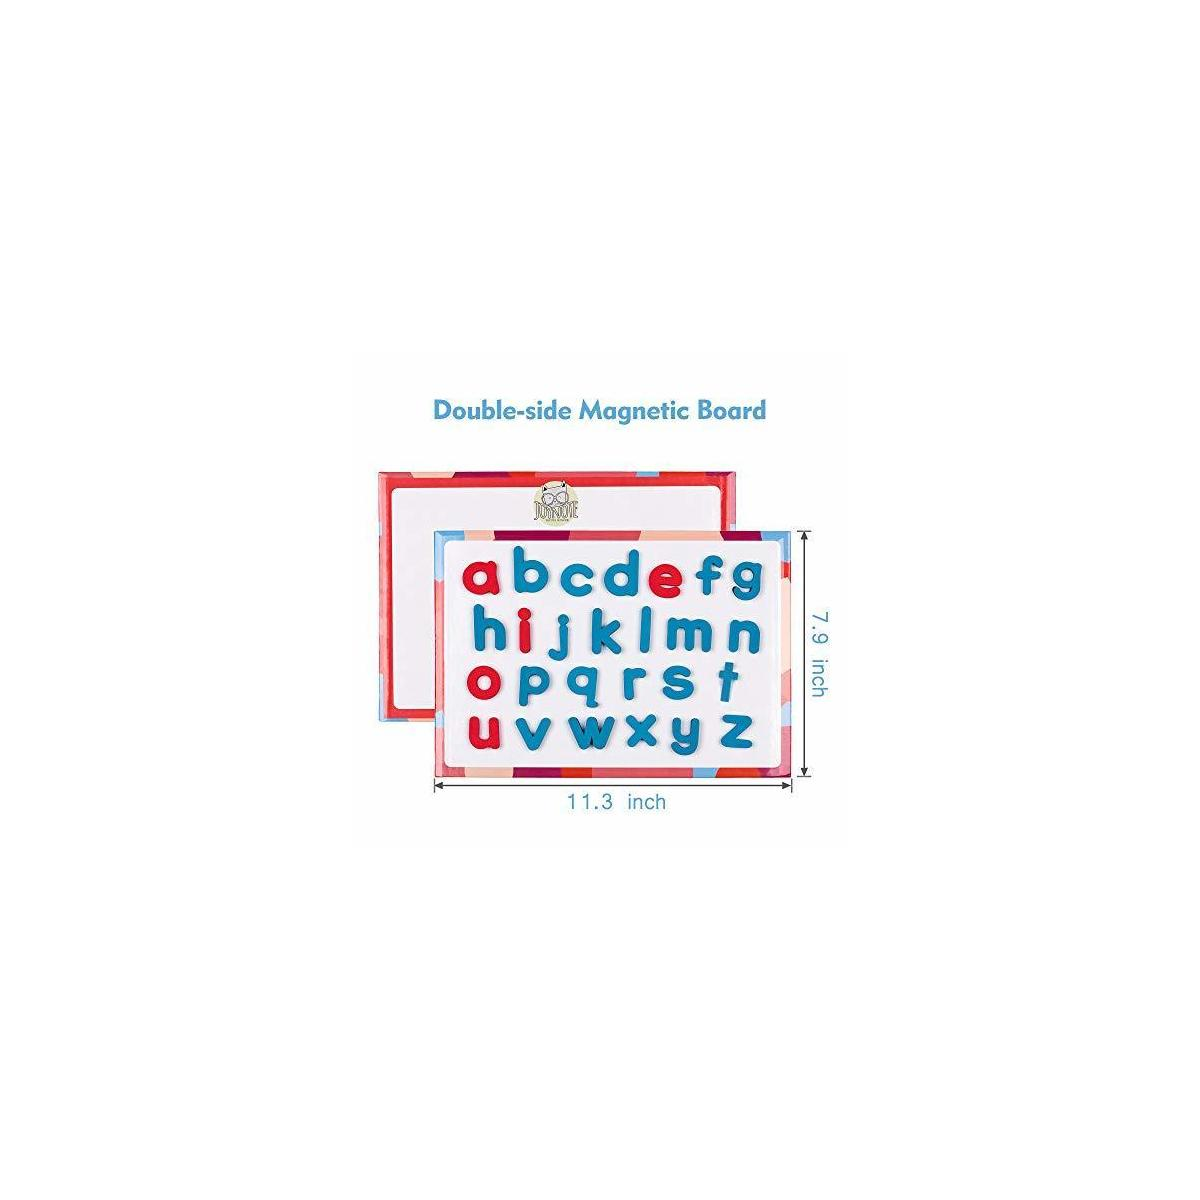 Magnetic Letters Kit with Double-Side Magnet Board